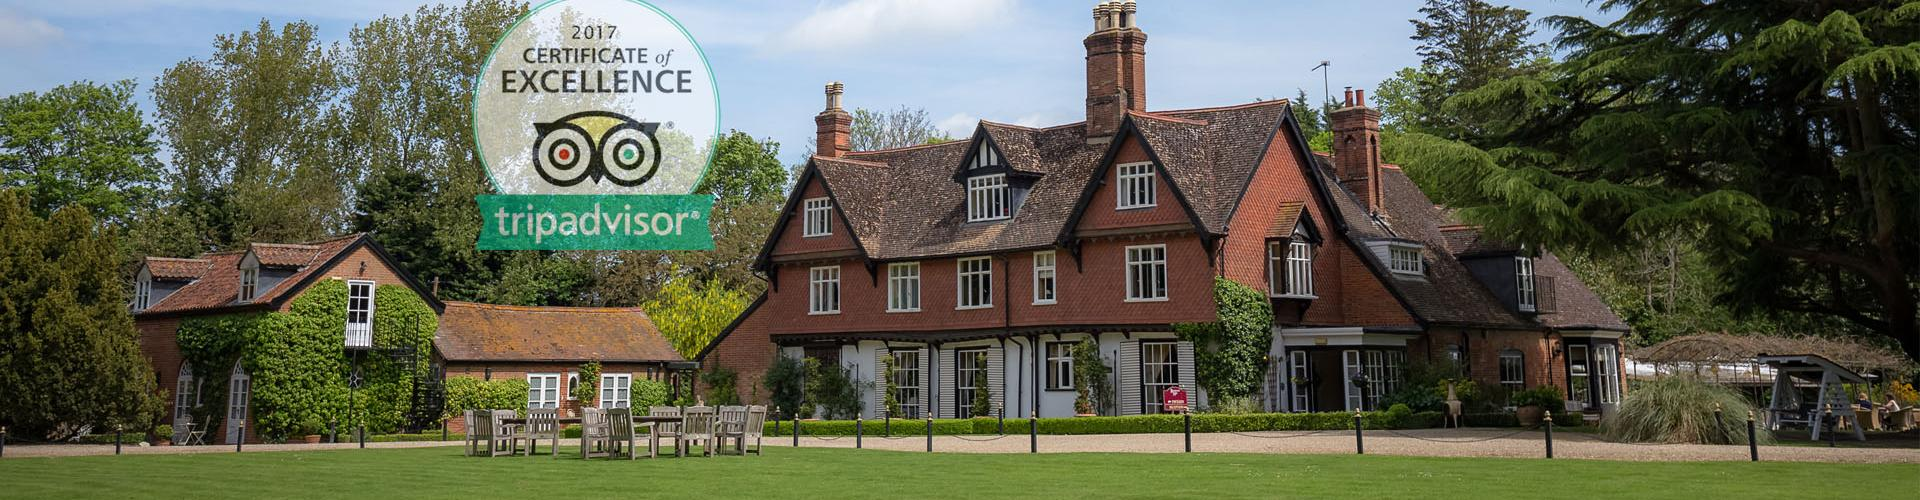 Hotels In Bury St Edmunds Wedding Venues In Suffolk